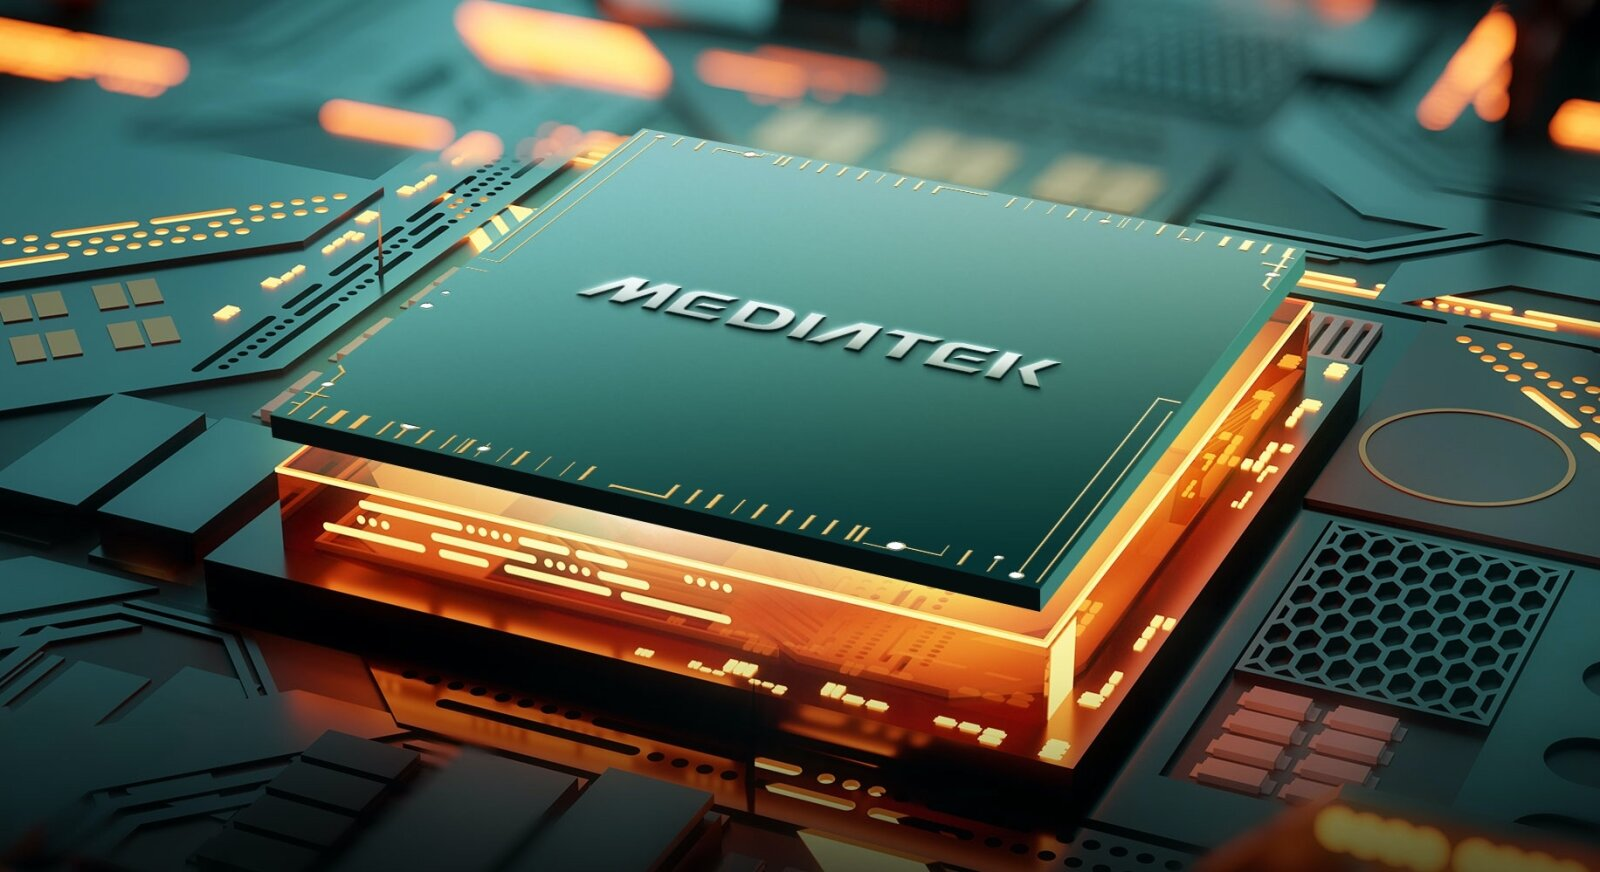 MediaTek, finally, manages to surpass Qualcomm